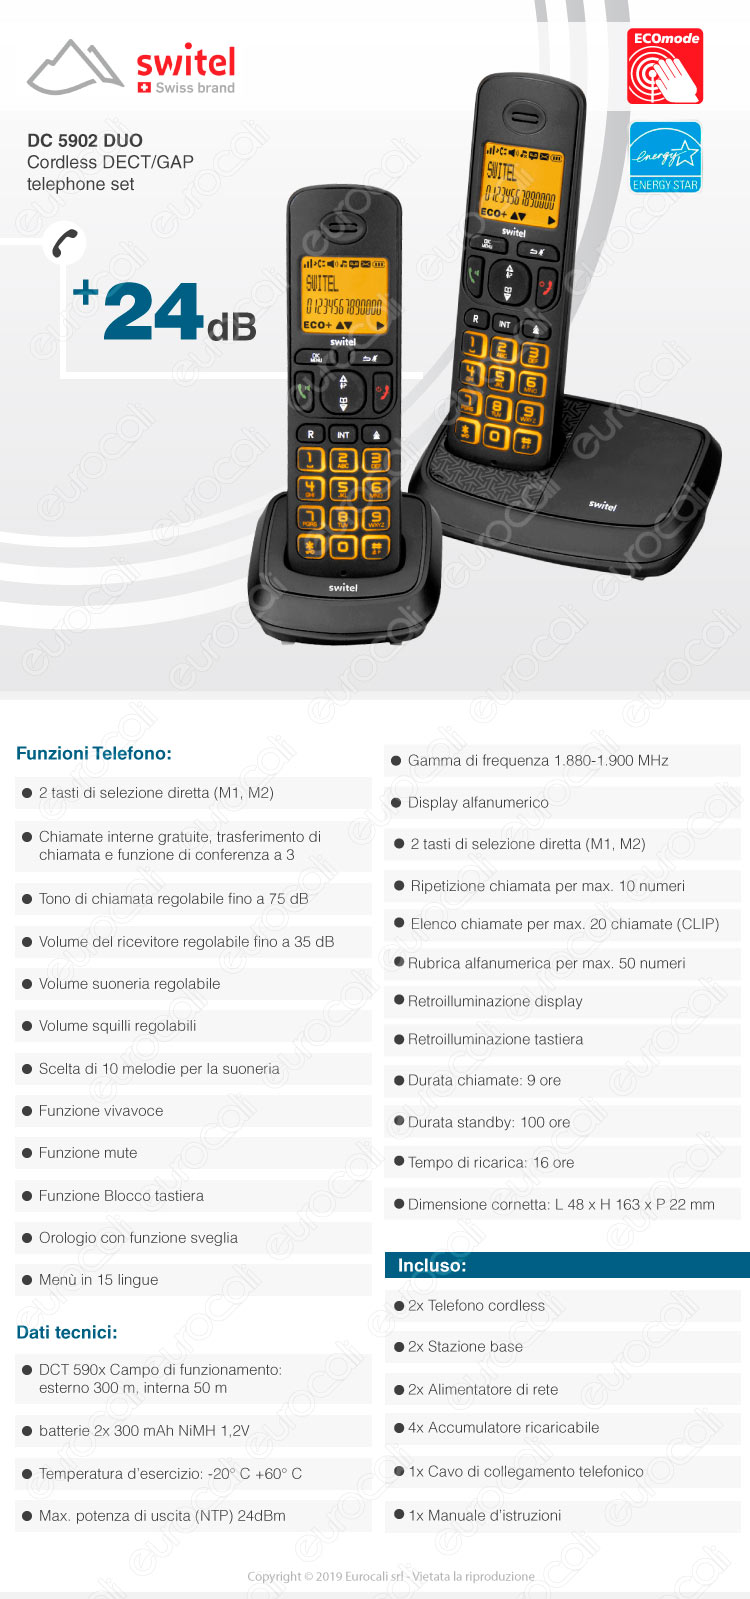 Switel Telefono cordless dect gap